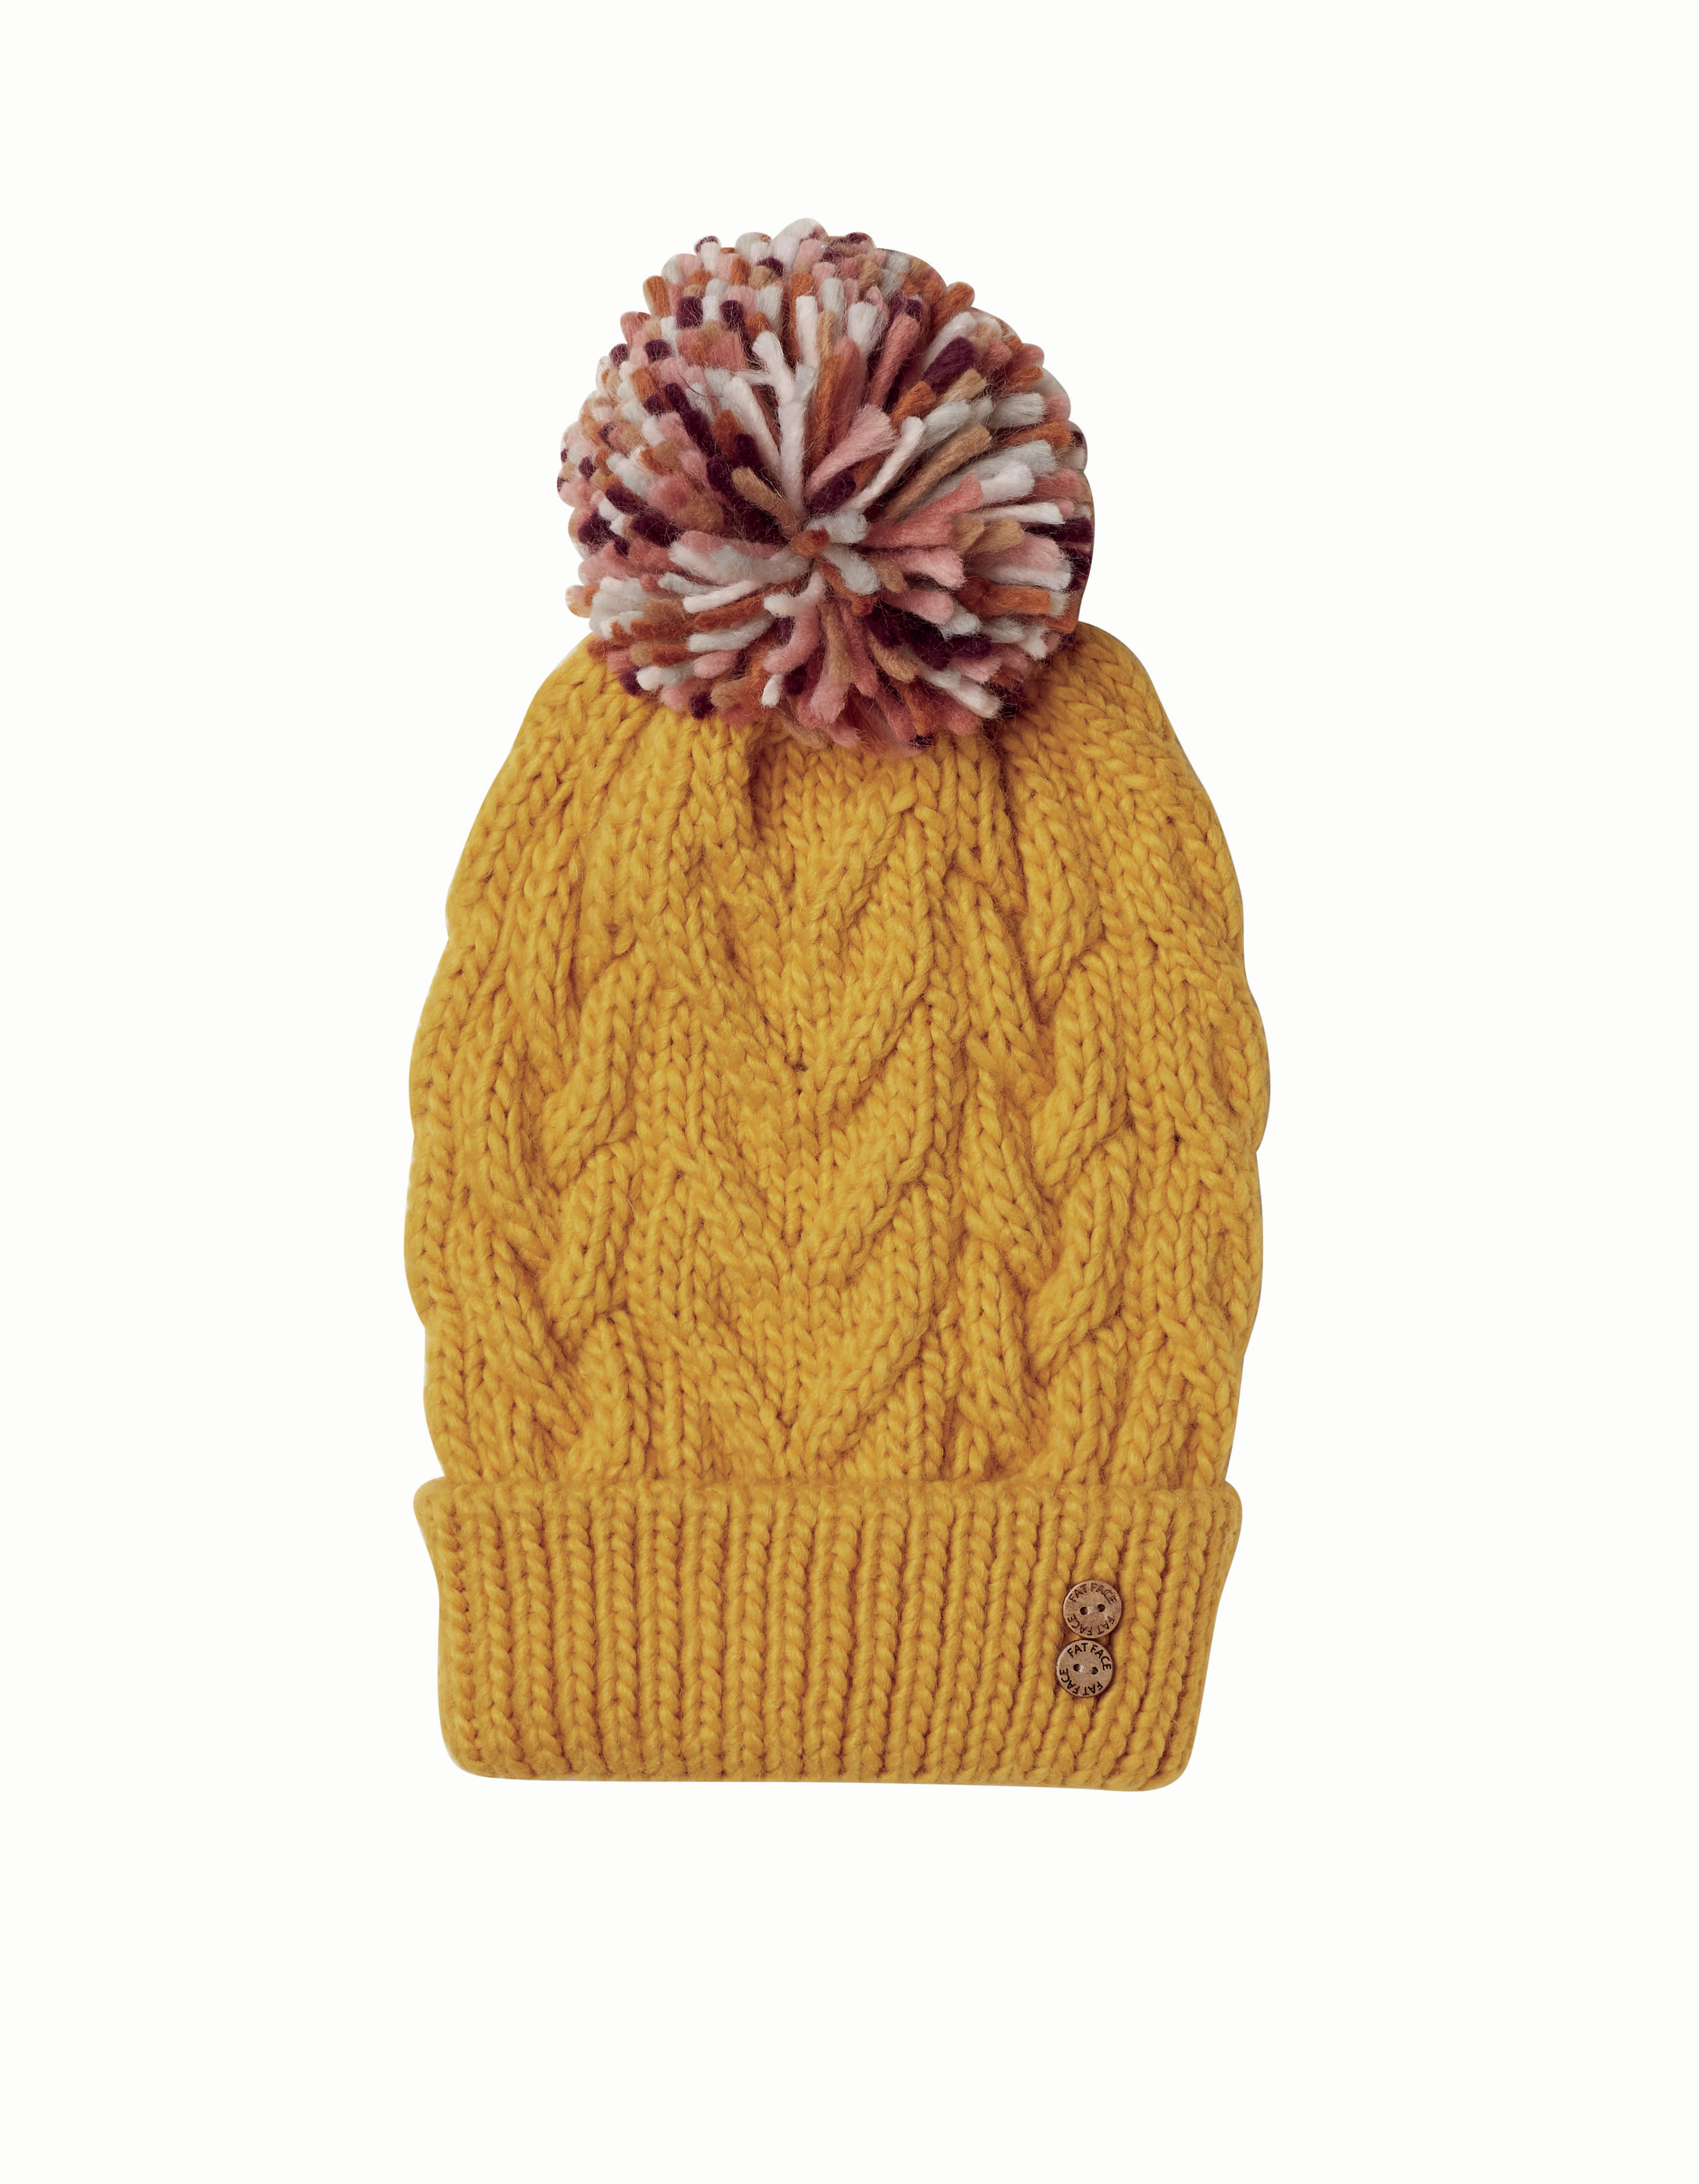 Mustard knitted pom beanie, £18, FatFace